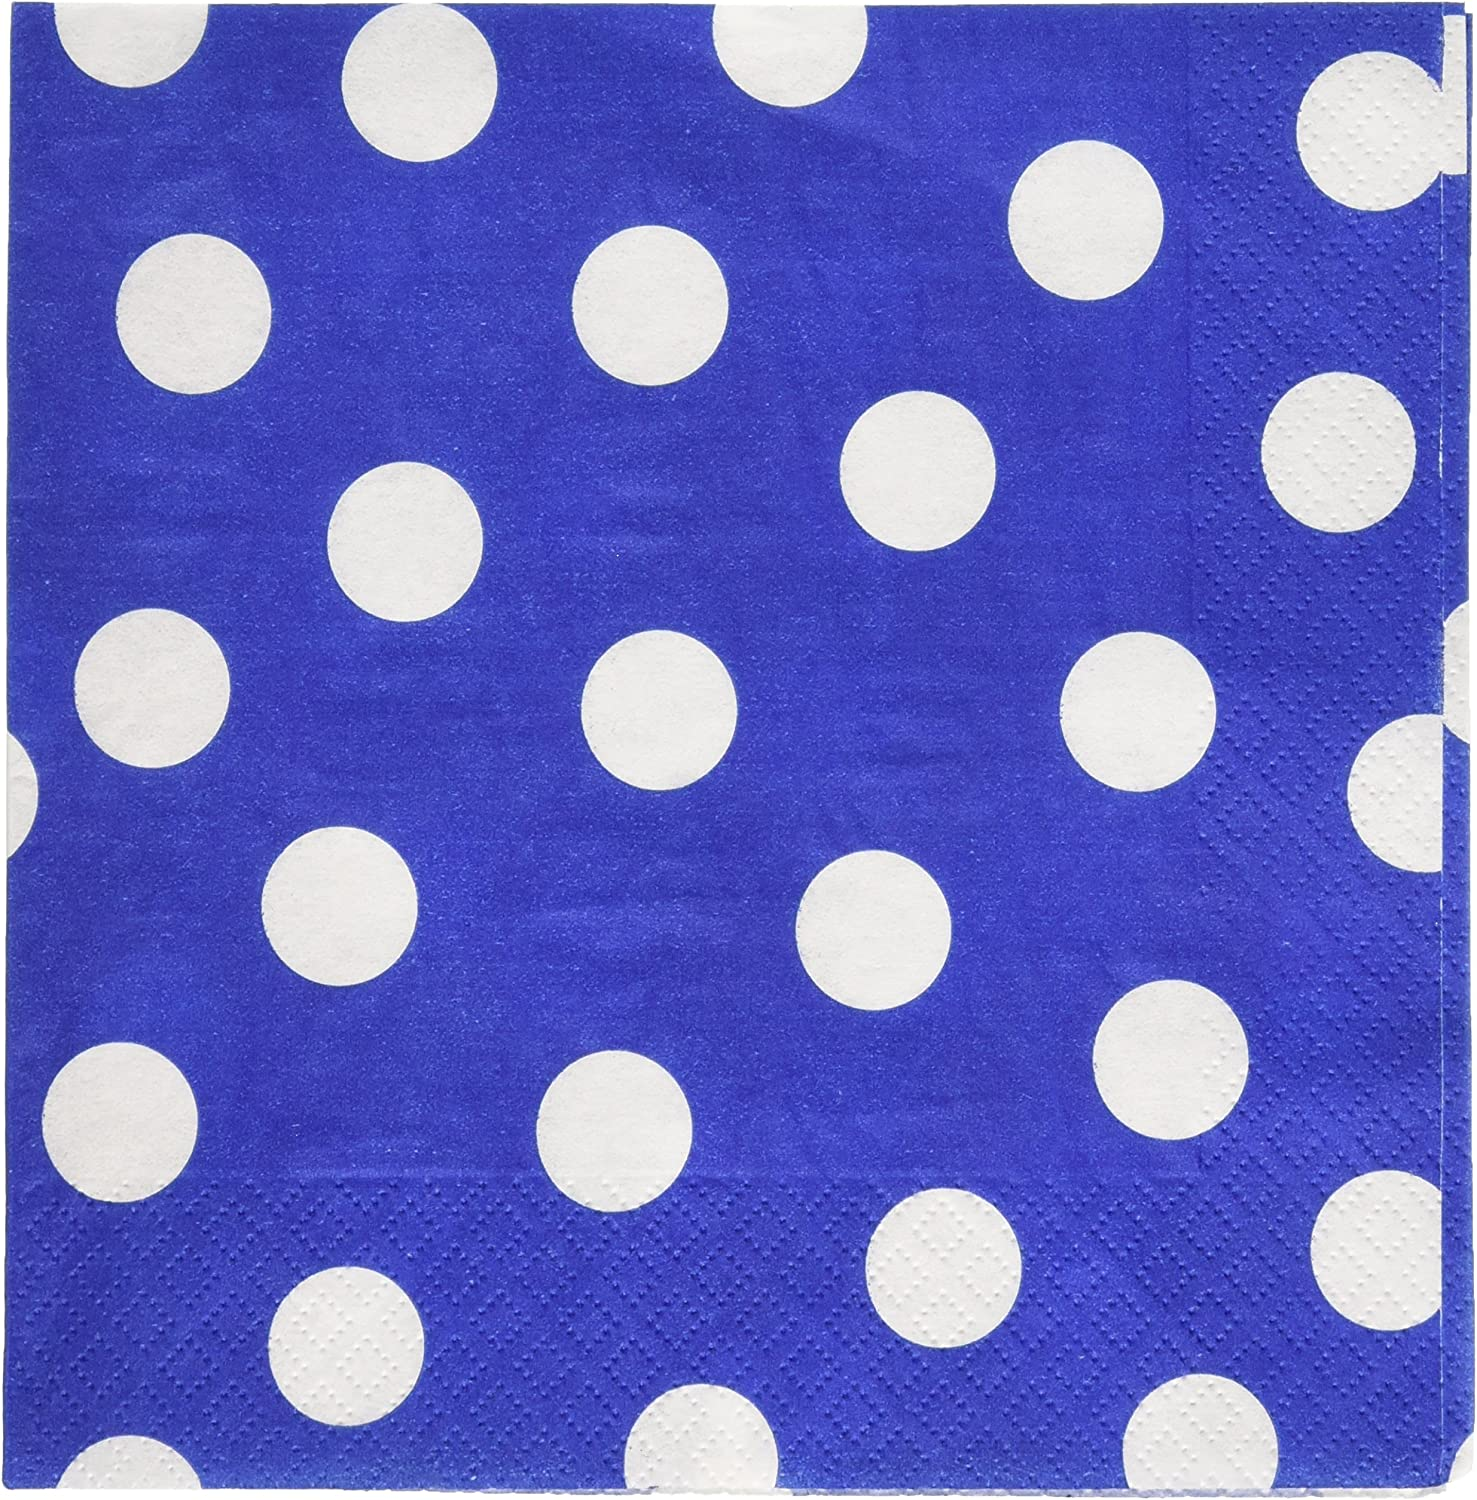 Amscan 511537.10499999998 Ready Polka Dots Luncheon Napkins Bright Royal bluee Paper 6  X 6  Pack 16 Party Tableware, 192 Pieces